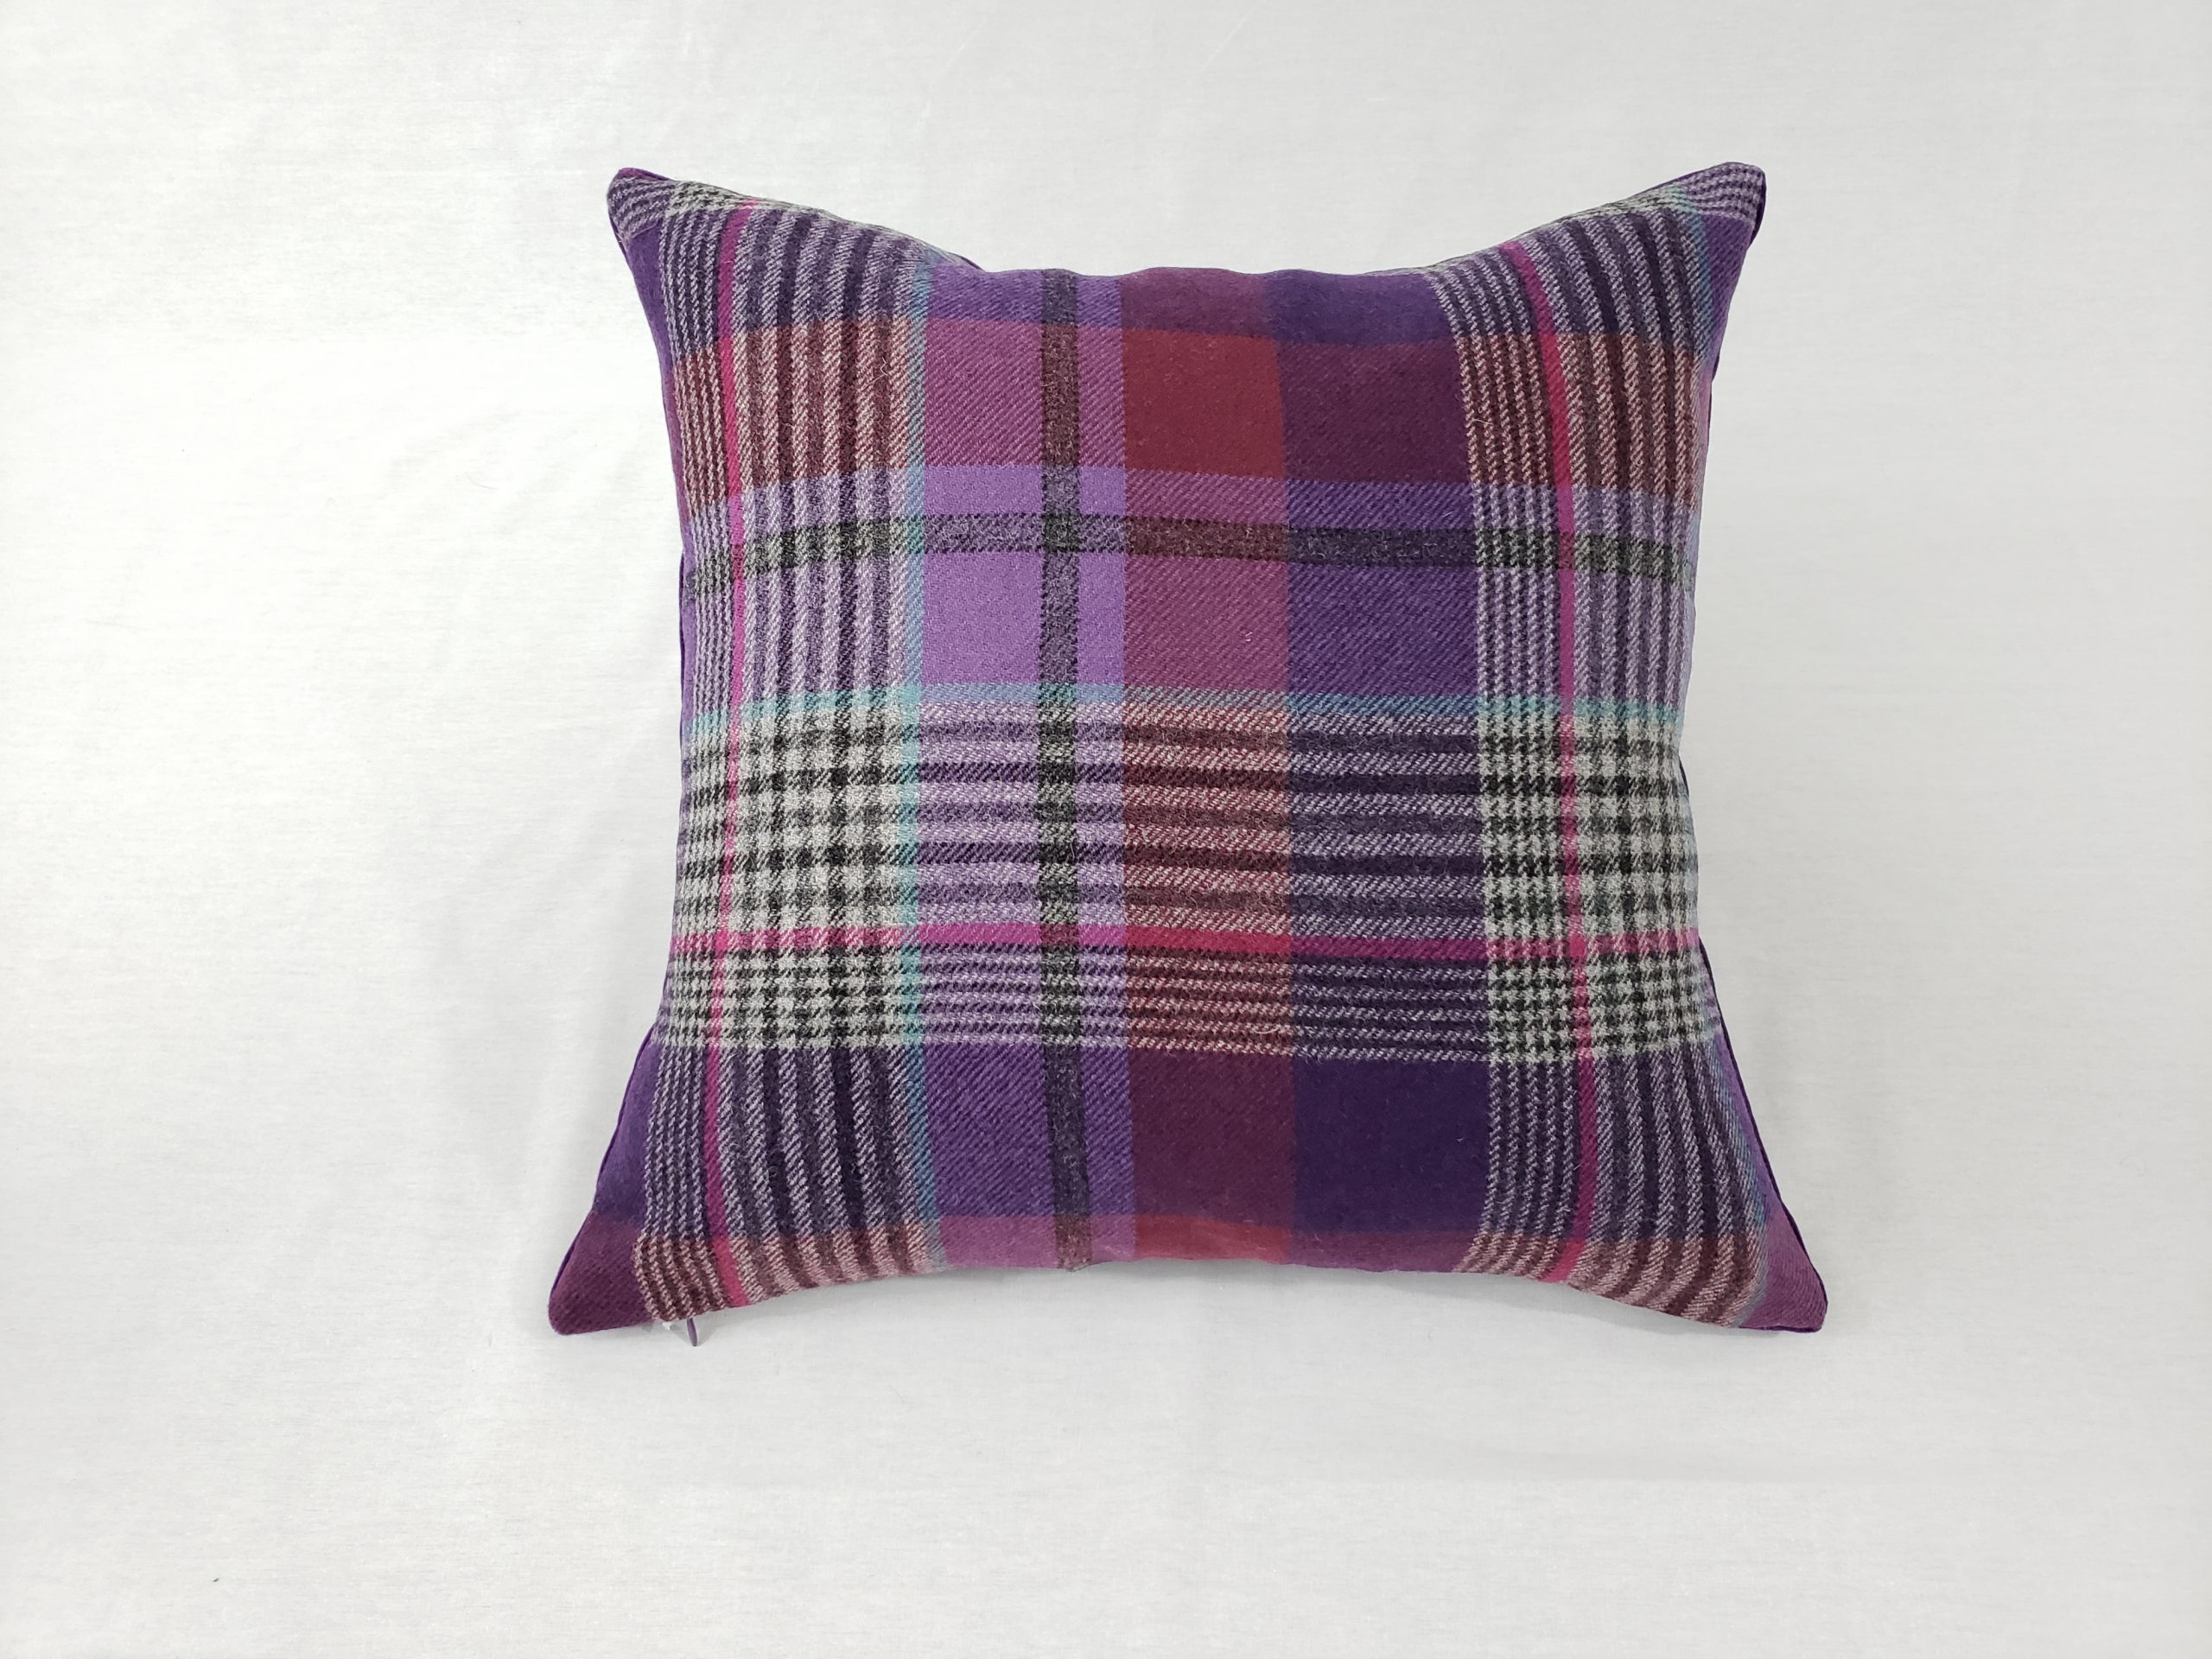 A multicolor wool plaid patterned cushion